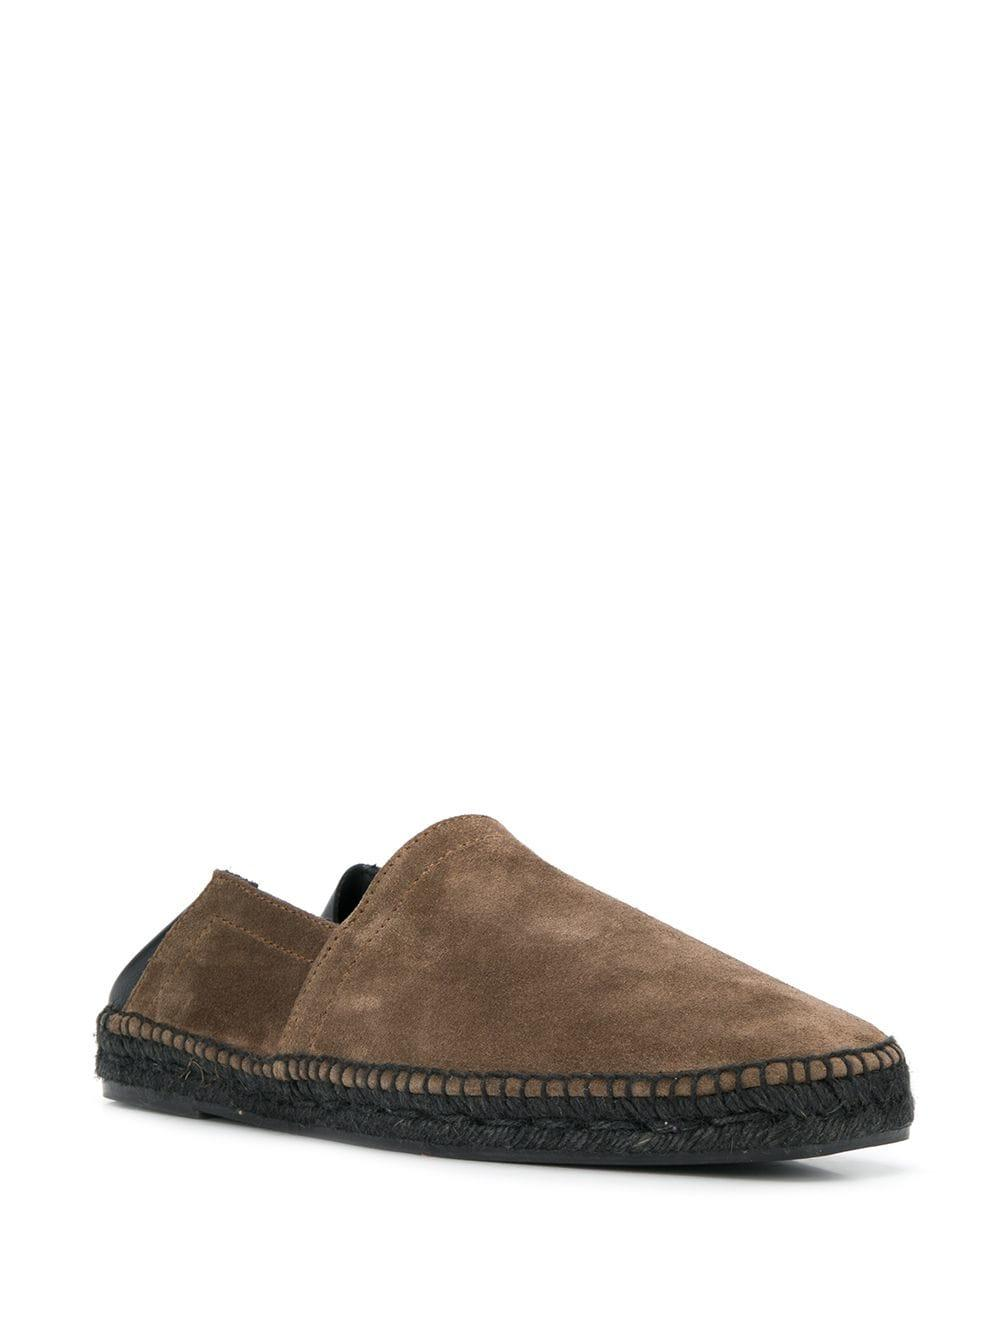 1ba985c9031 Tom Ford Leather Trim Espadrilles in Brown for Men - Lyst